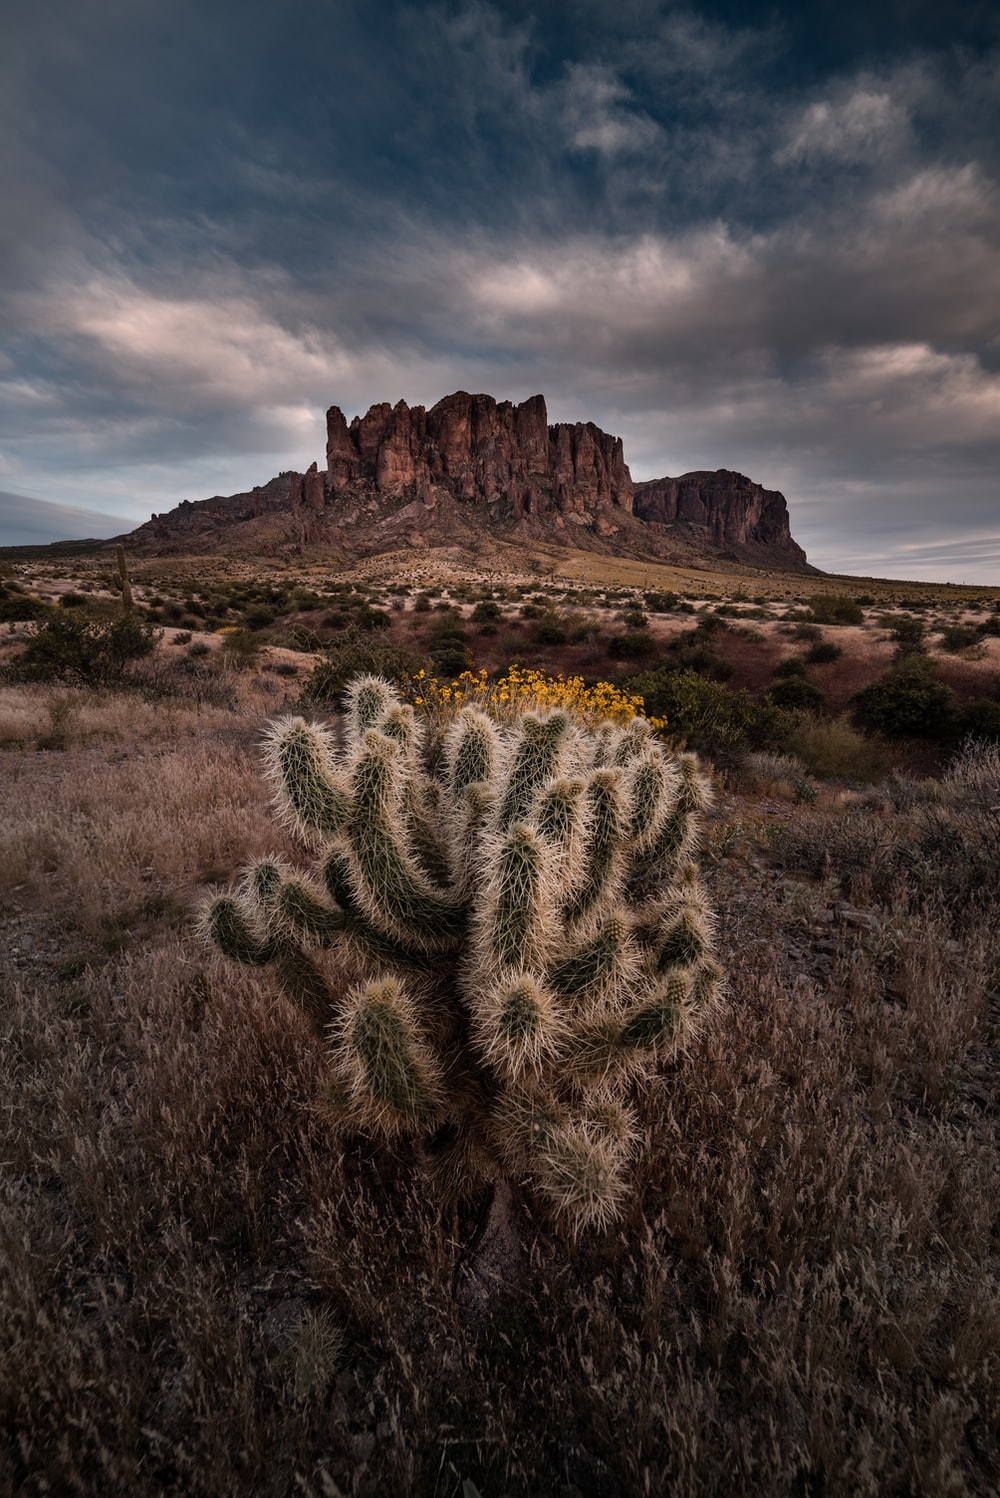 green cactus on brown field under cloudy sky during daytime